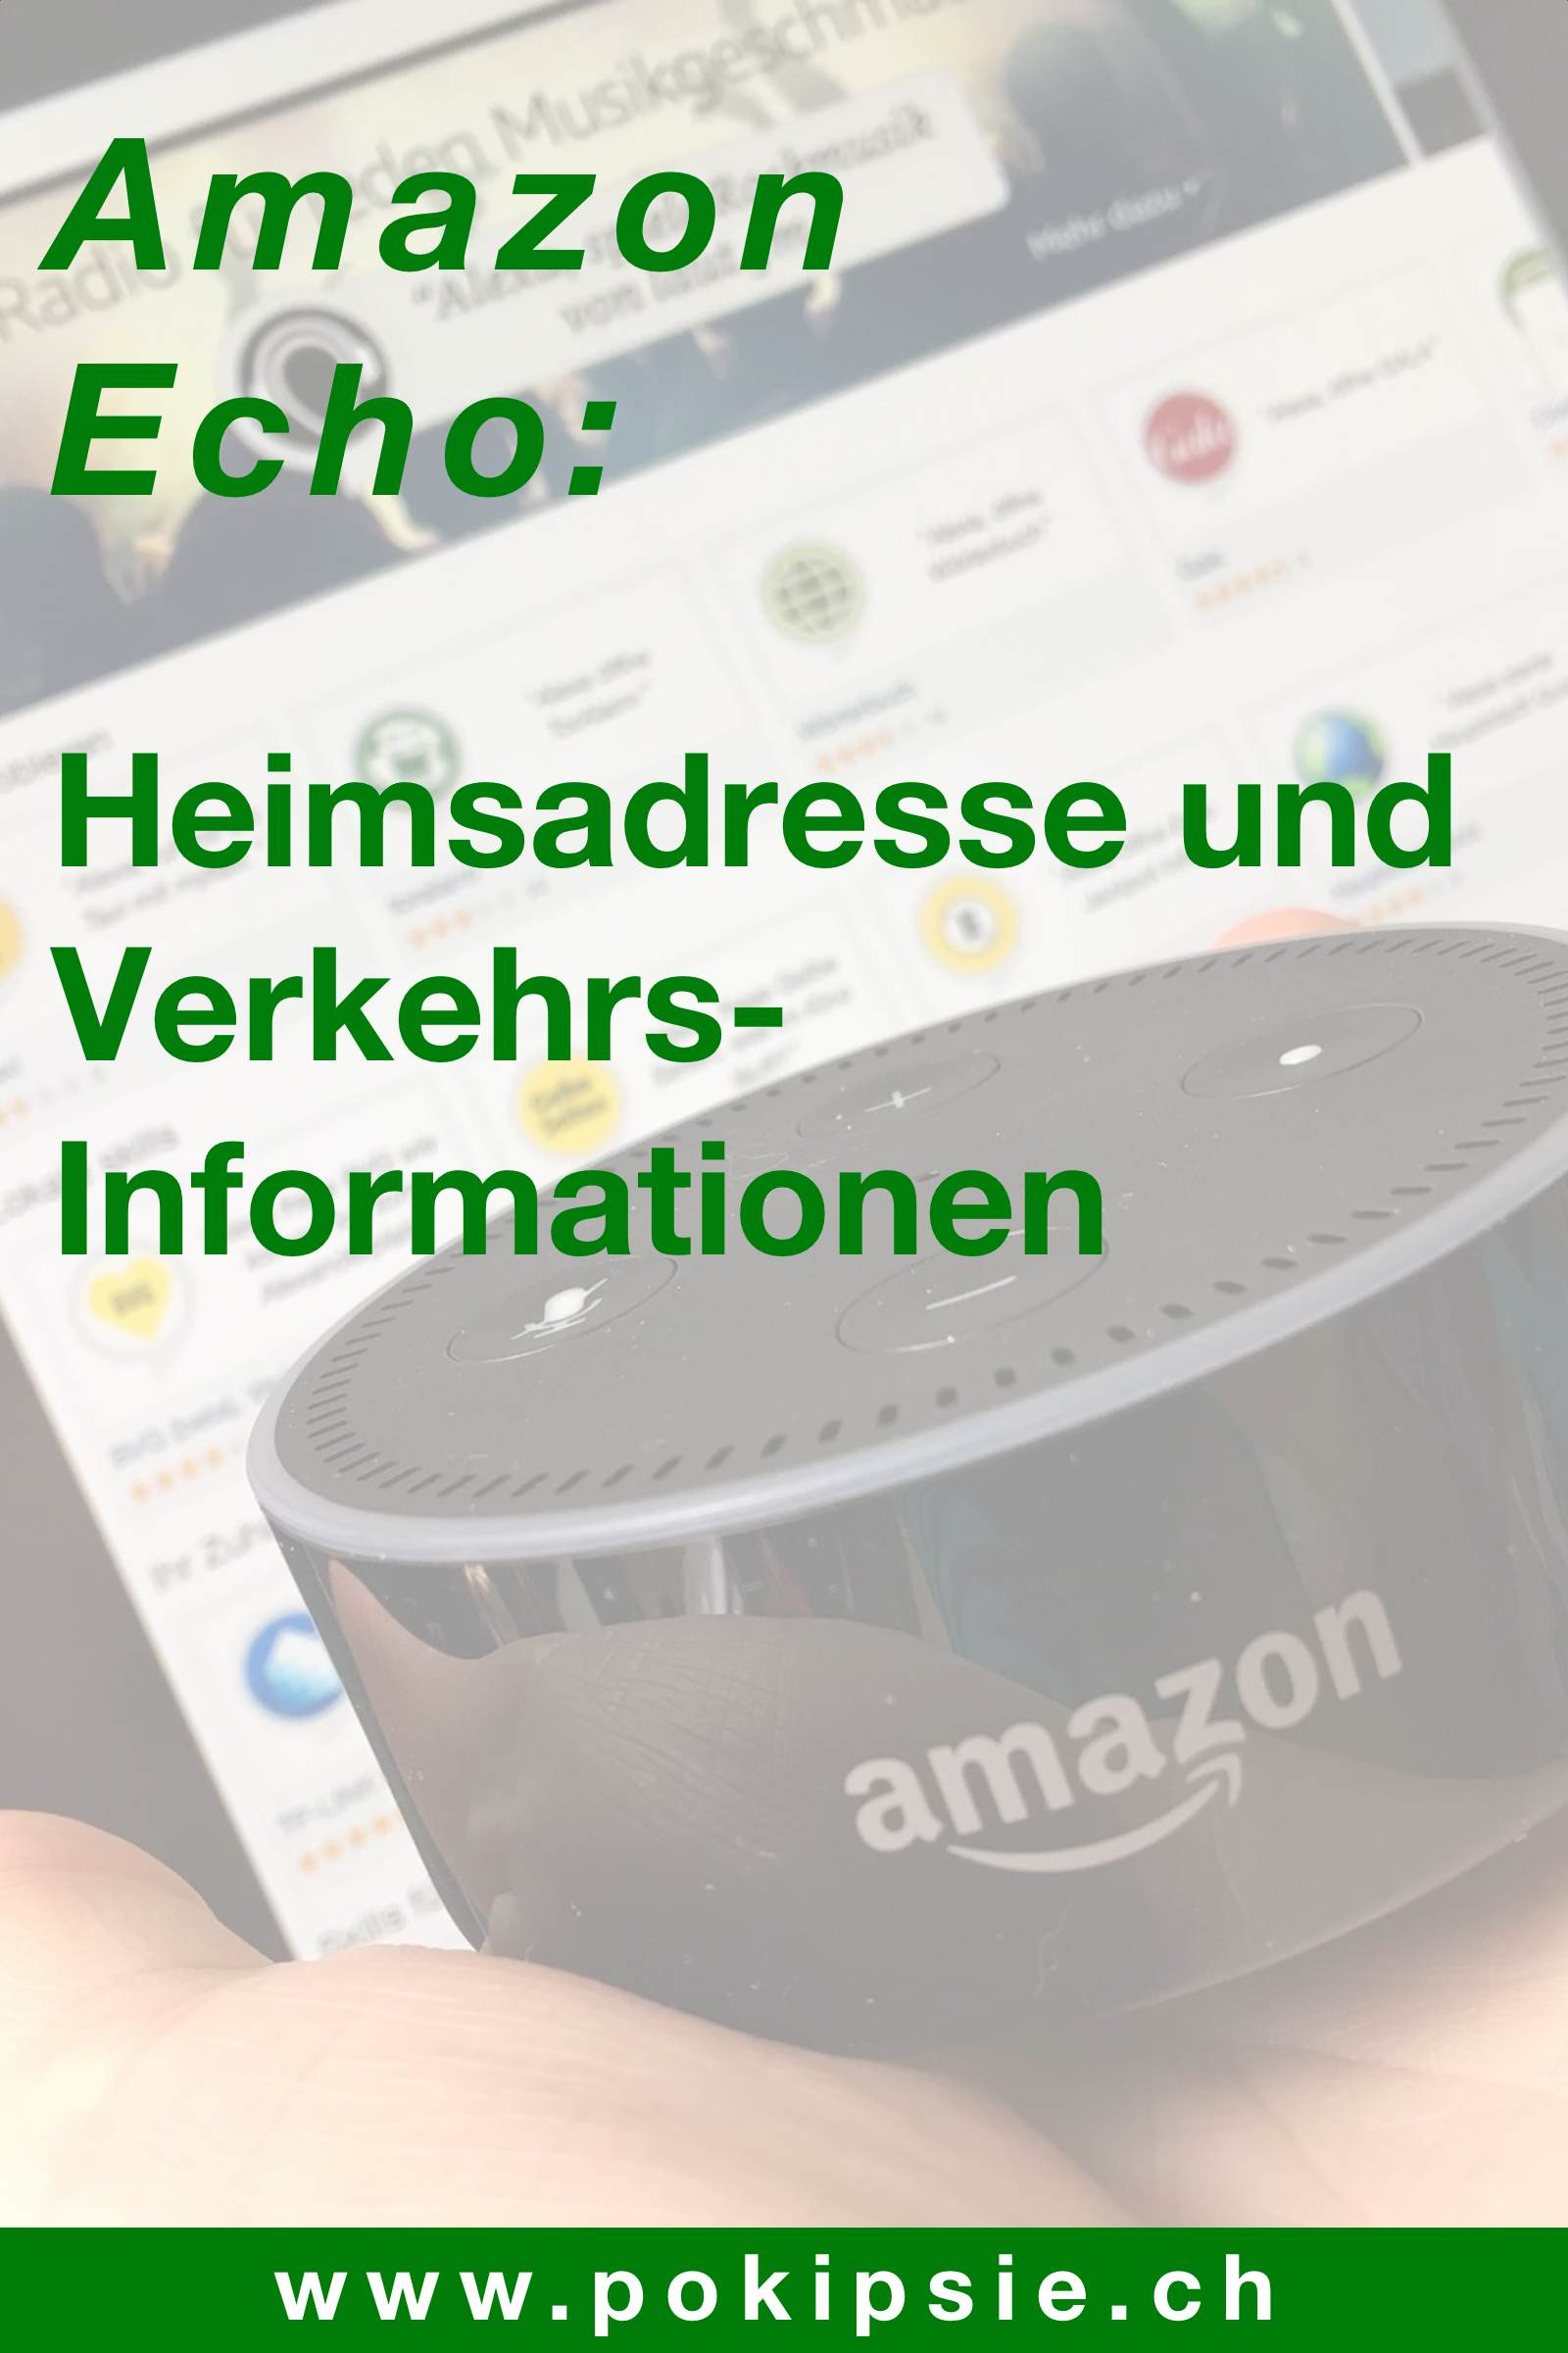 Pinterest – Amazon Echo – Heimadresse und Verkehrsinformationen